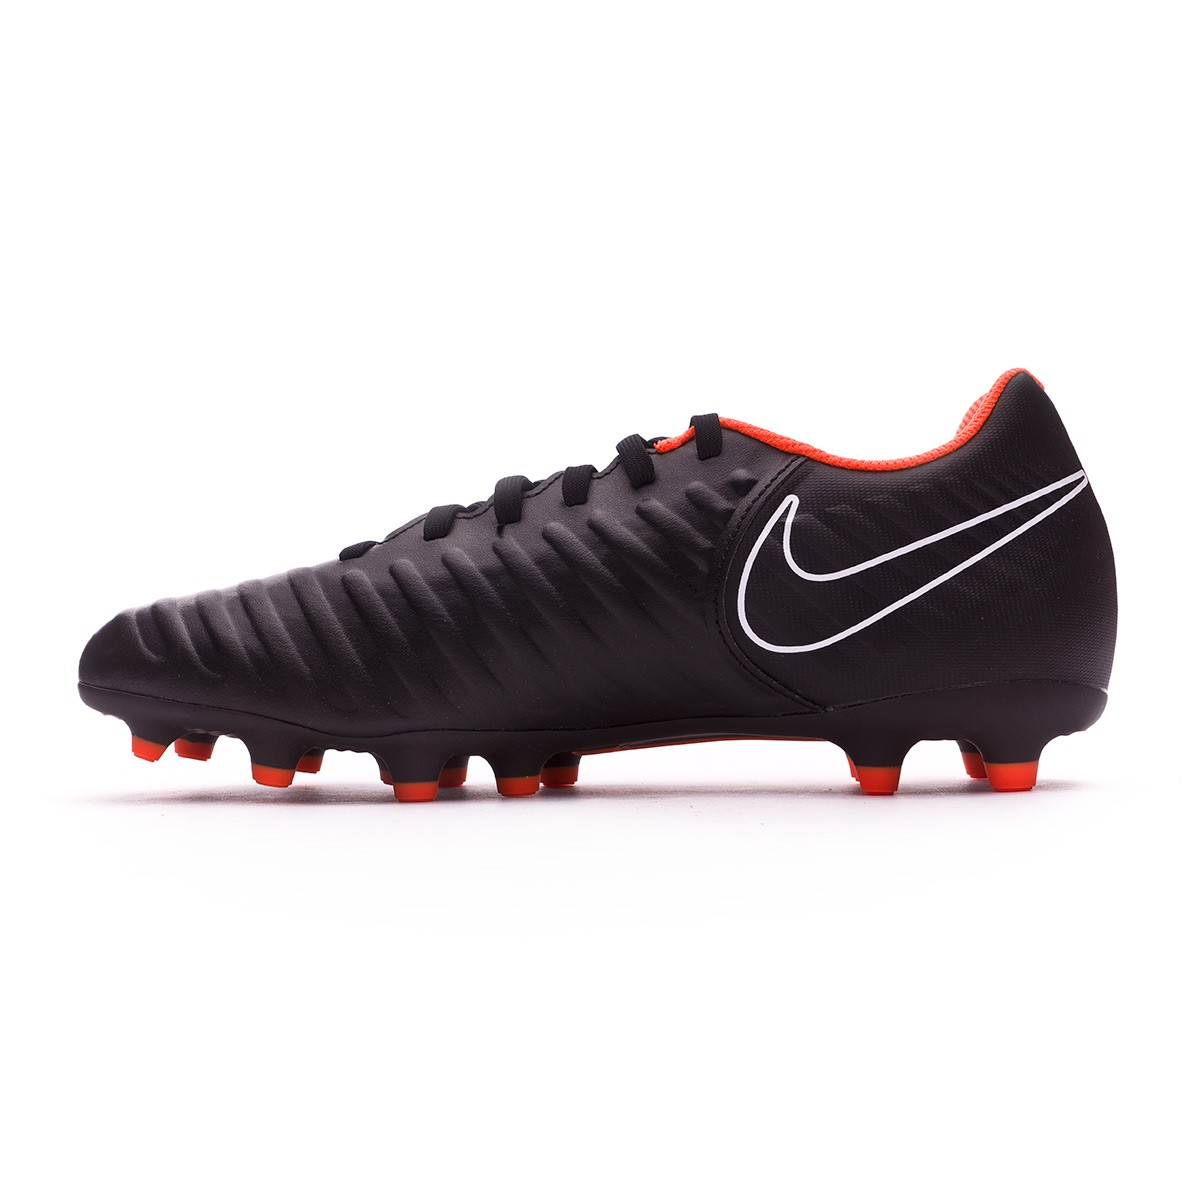 new arrival d7439 4de56 Zapatos de fútbol Nike Tiempo Legend VII Club FG Black-Total orange-White -  Tienda de fútbol Fútbol Emotion